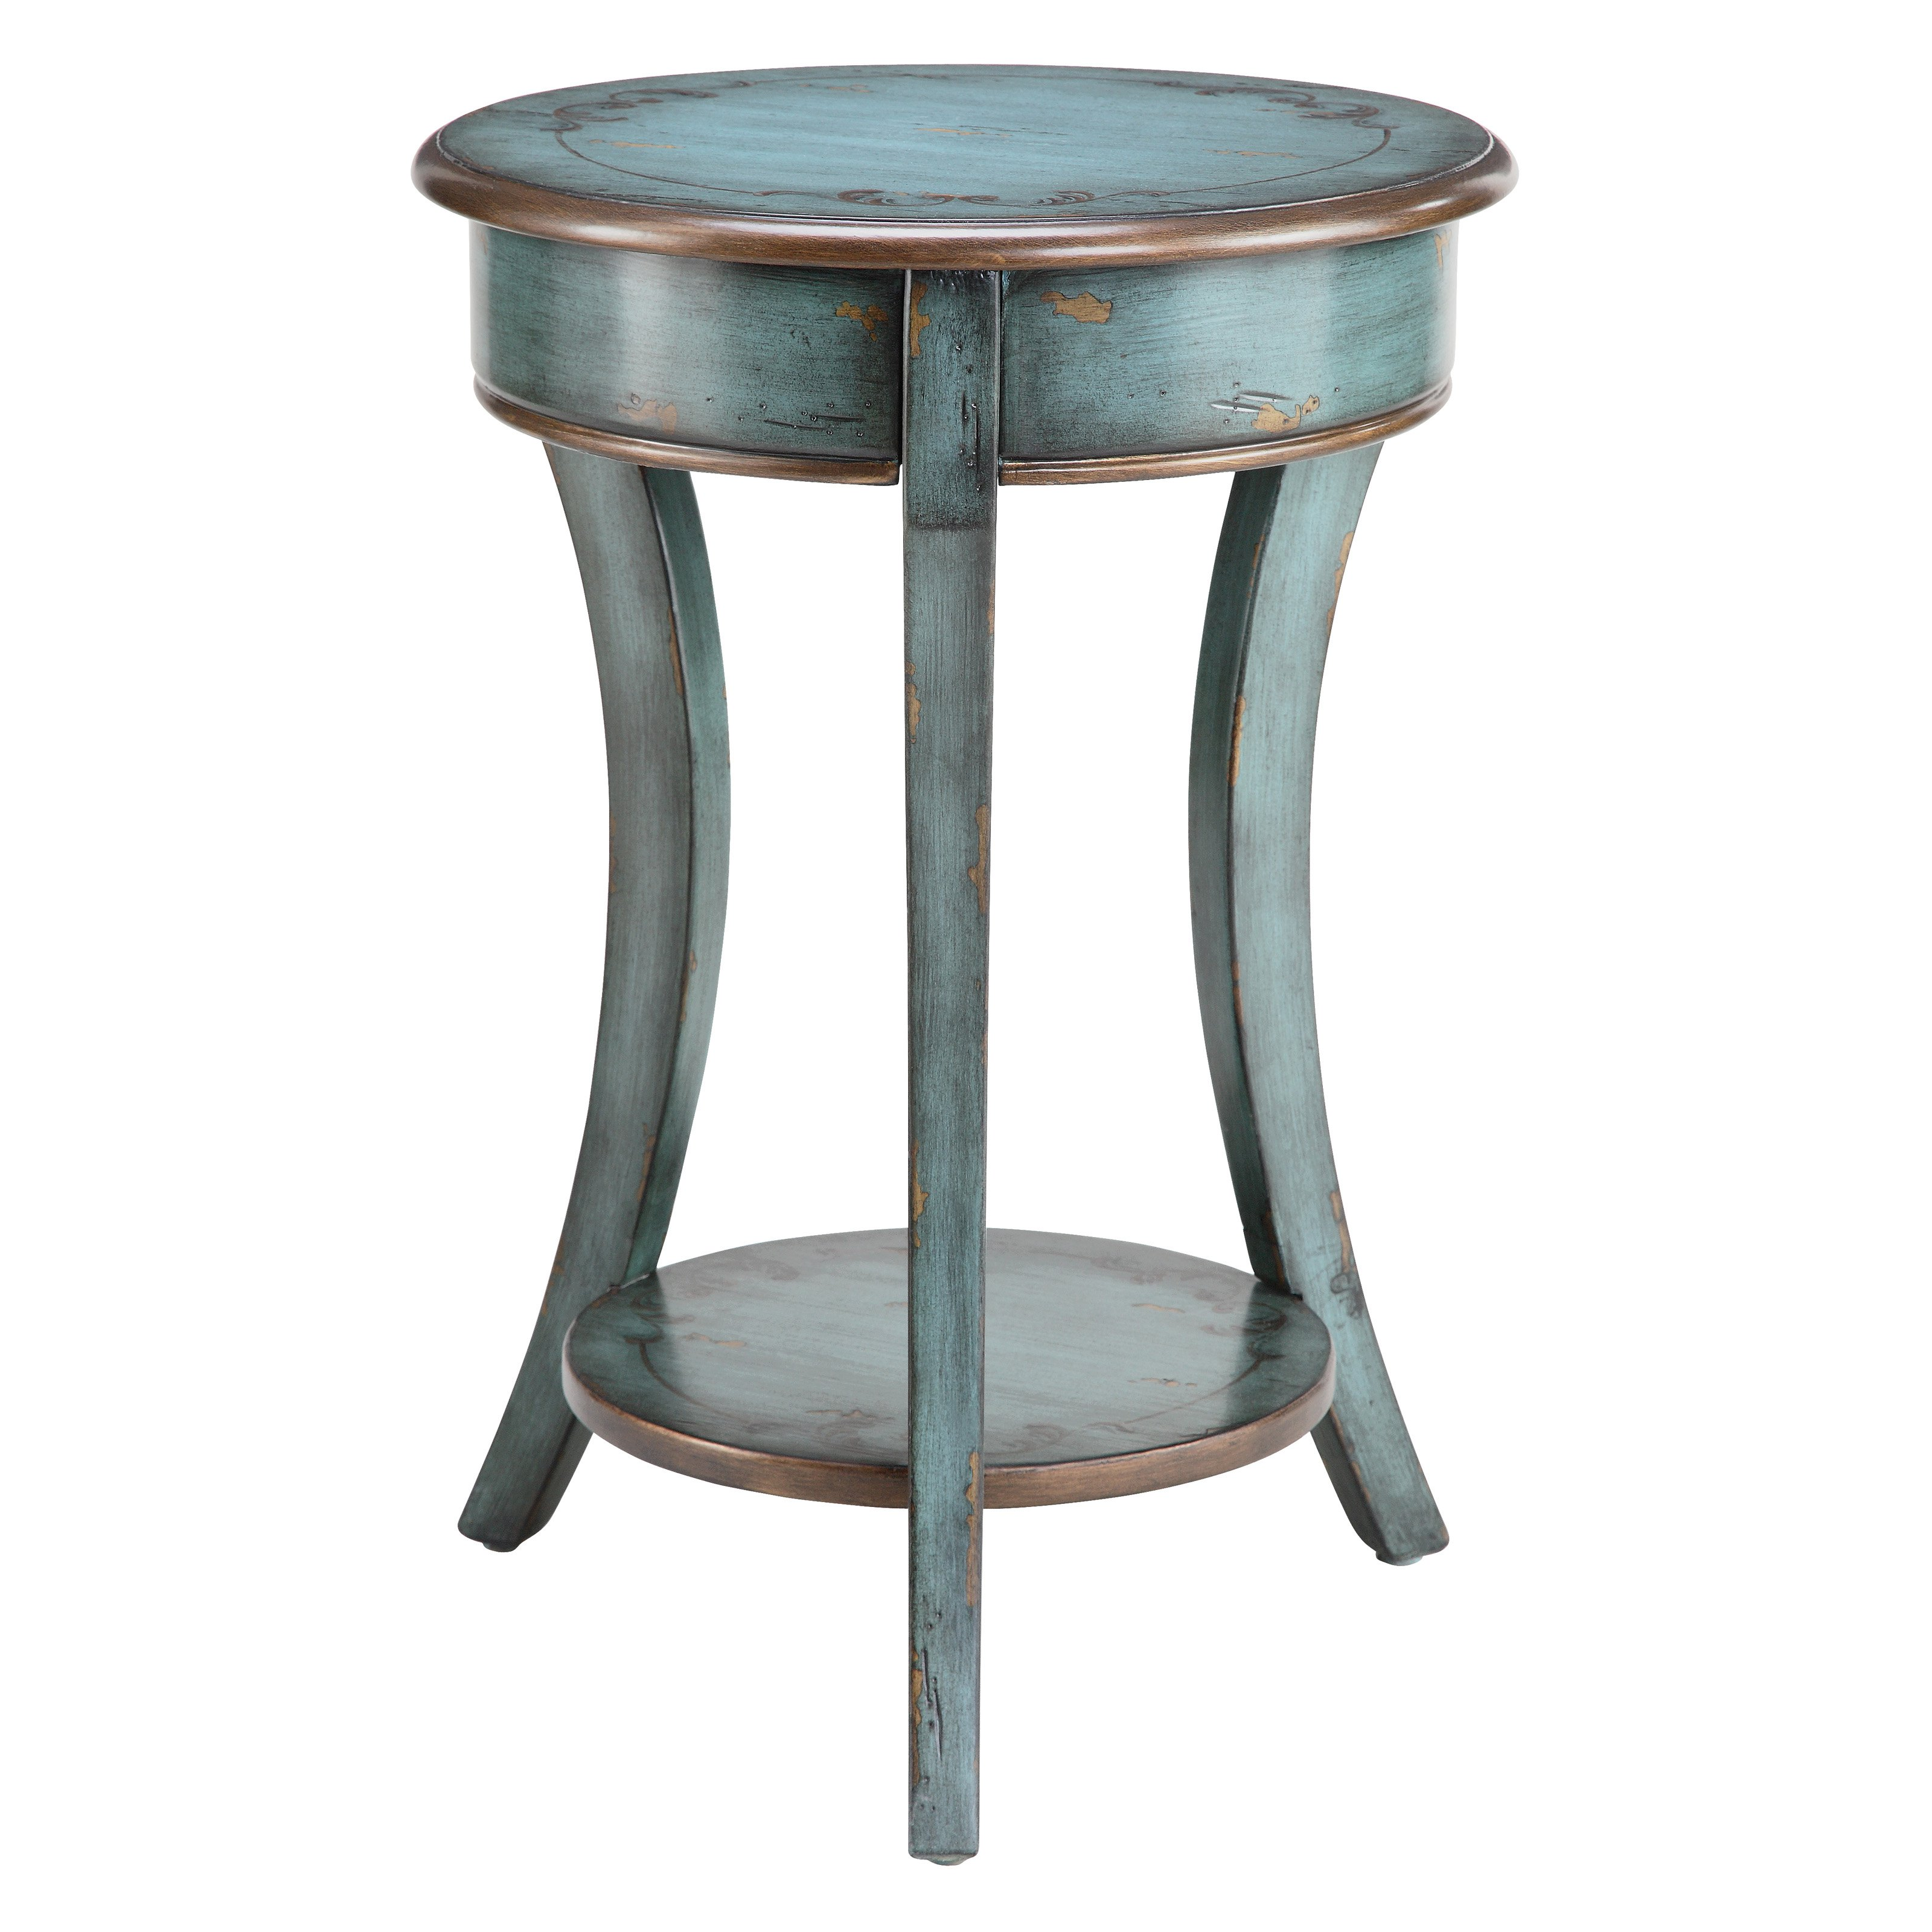 half moon accent table tables medical bedside stein world freya end antique bronze dining room wooden plant stand small cream coffee pads better homes and gardens multiple colors